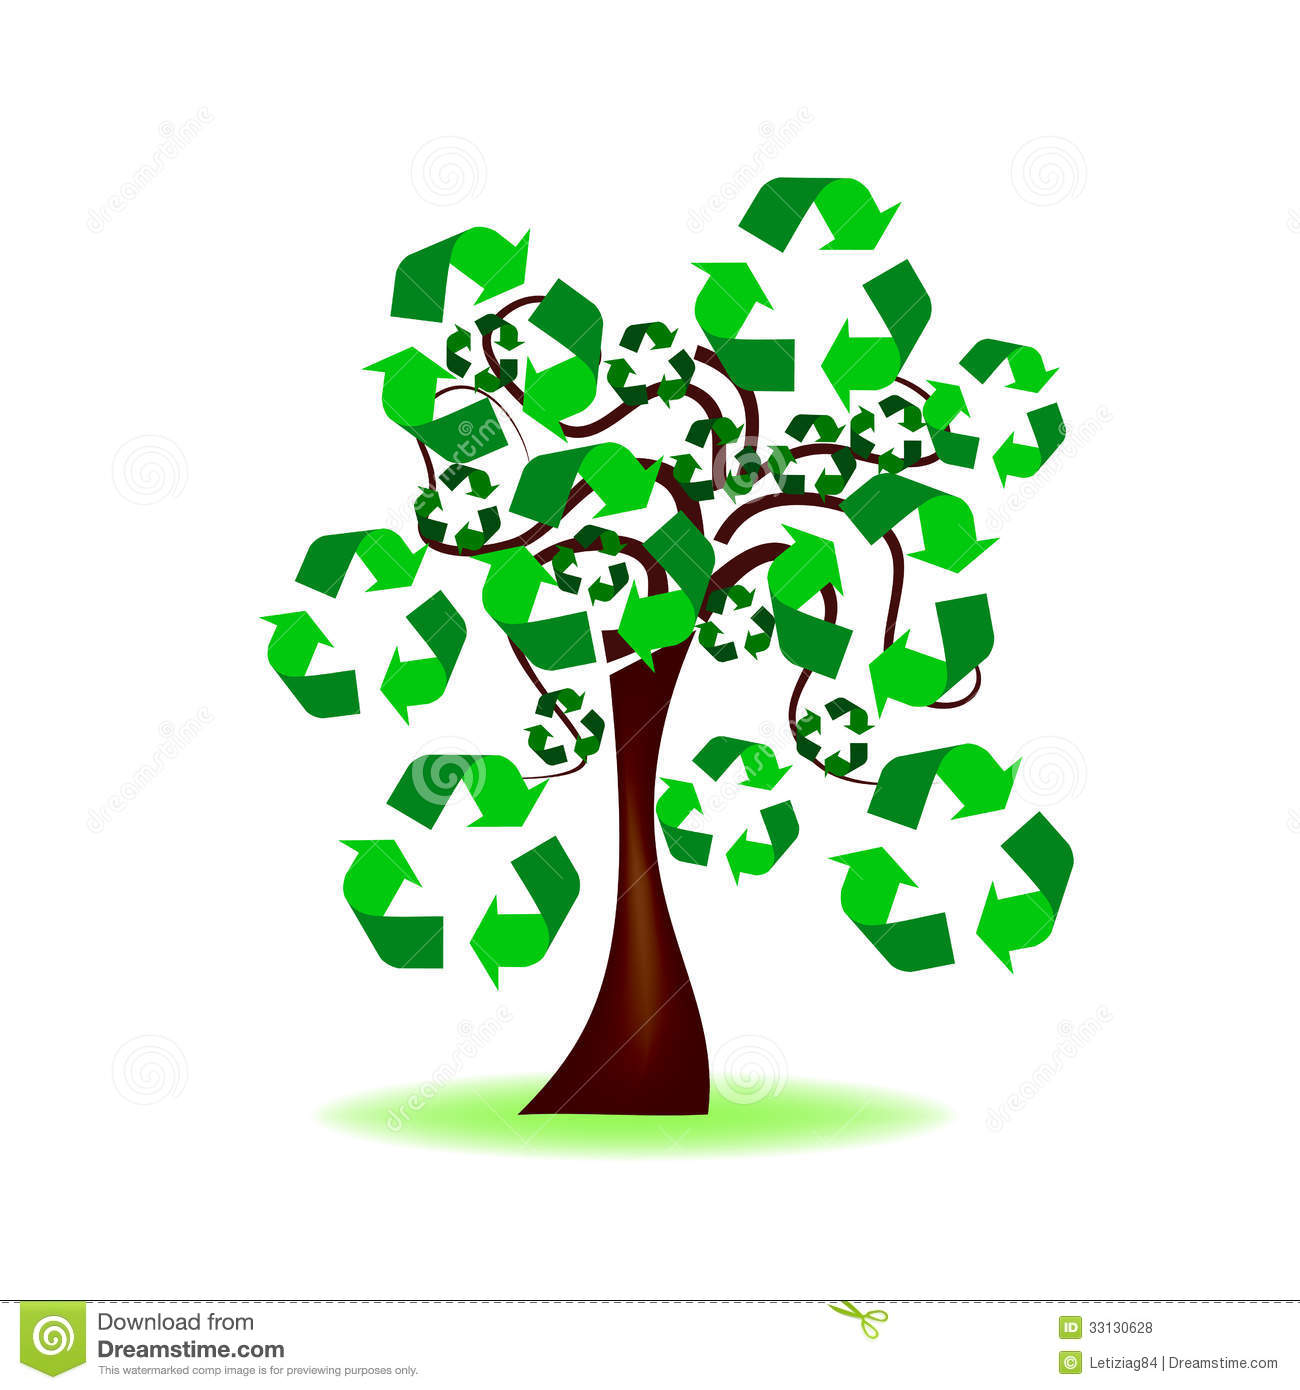 Tree With Recycling Icon Royalty Free Stock Photos - Image: 33130628